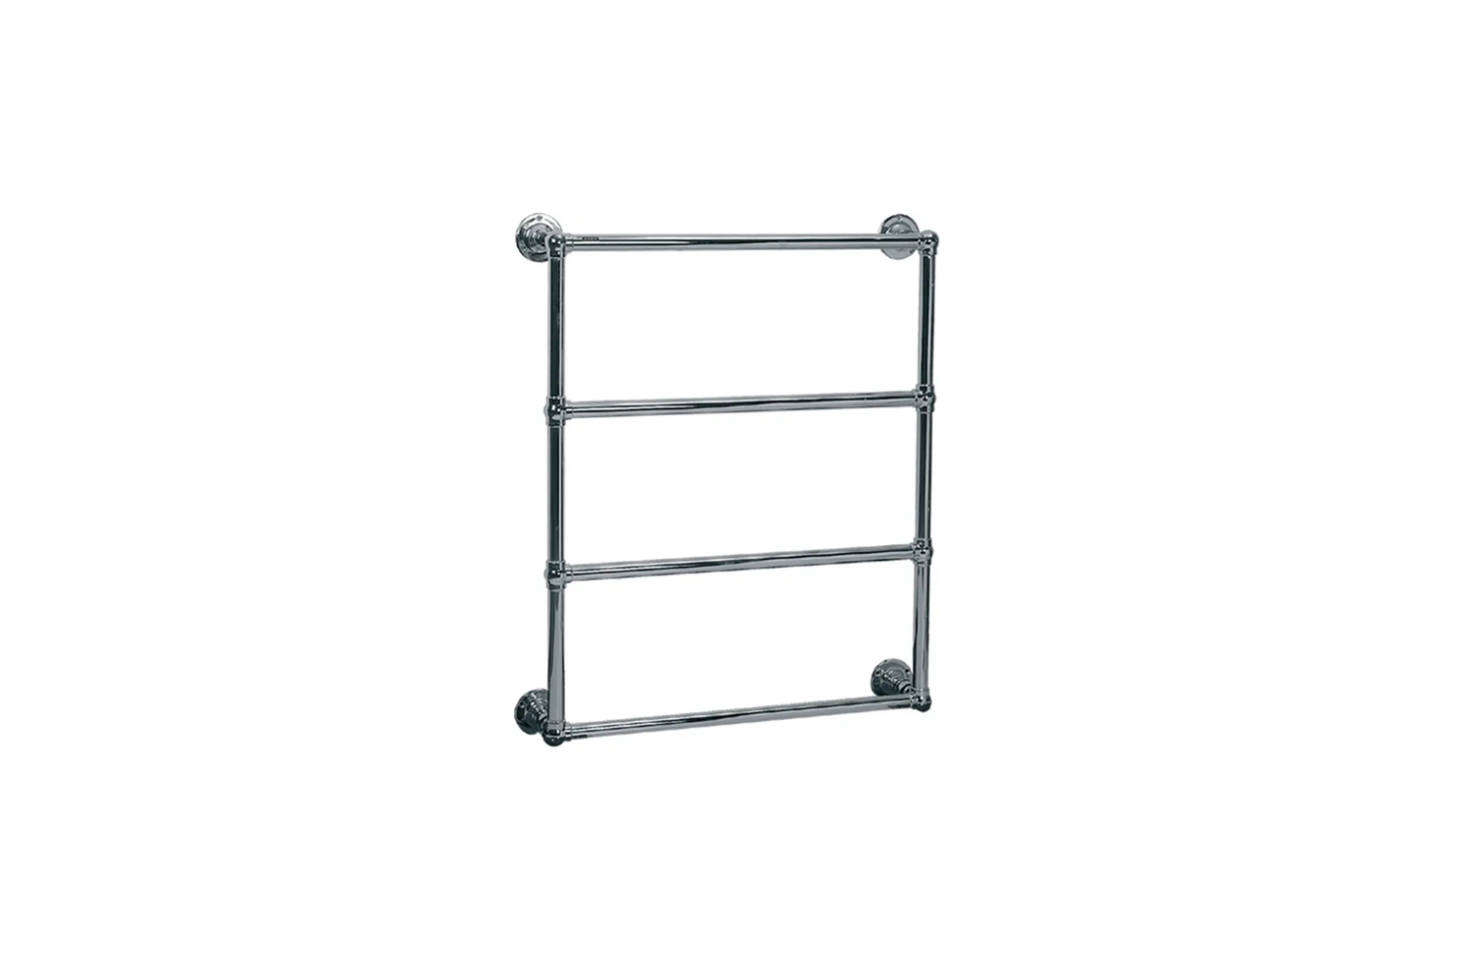 For a traditional style, look to Lefroy Brooks for their Classic 1900 Electric Ball Jointed Wall-Mounted Towel Warmer for $3,297 at Quality Bath.